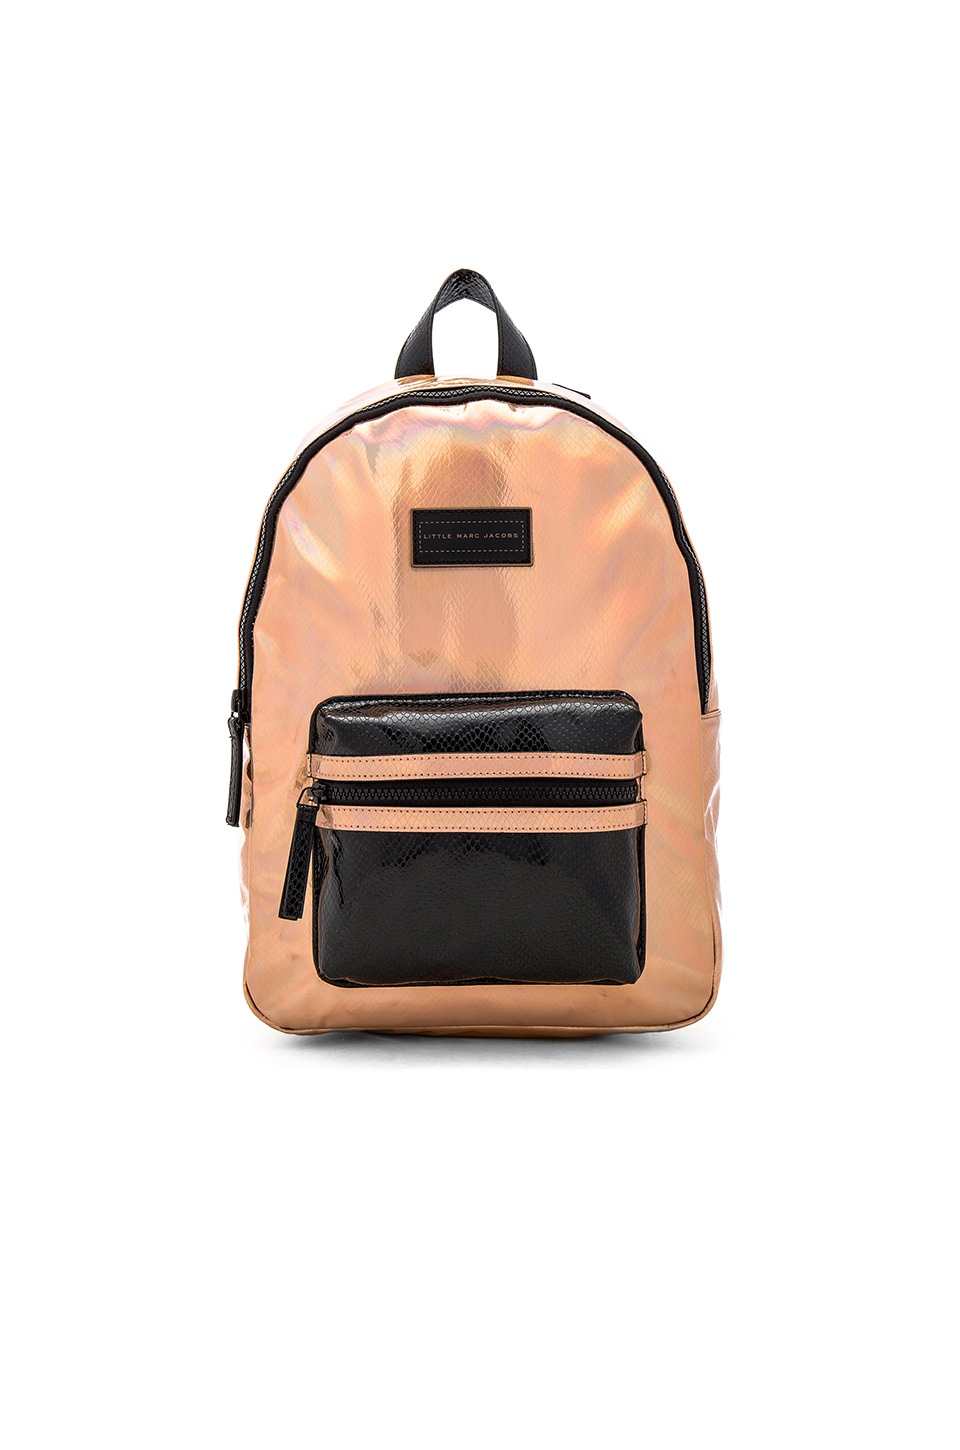 Marc Jacobs Leather Effect Backpack in Cuivre Rose